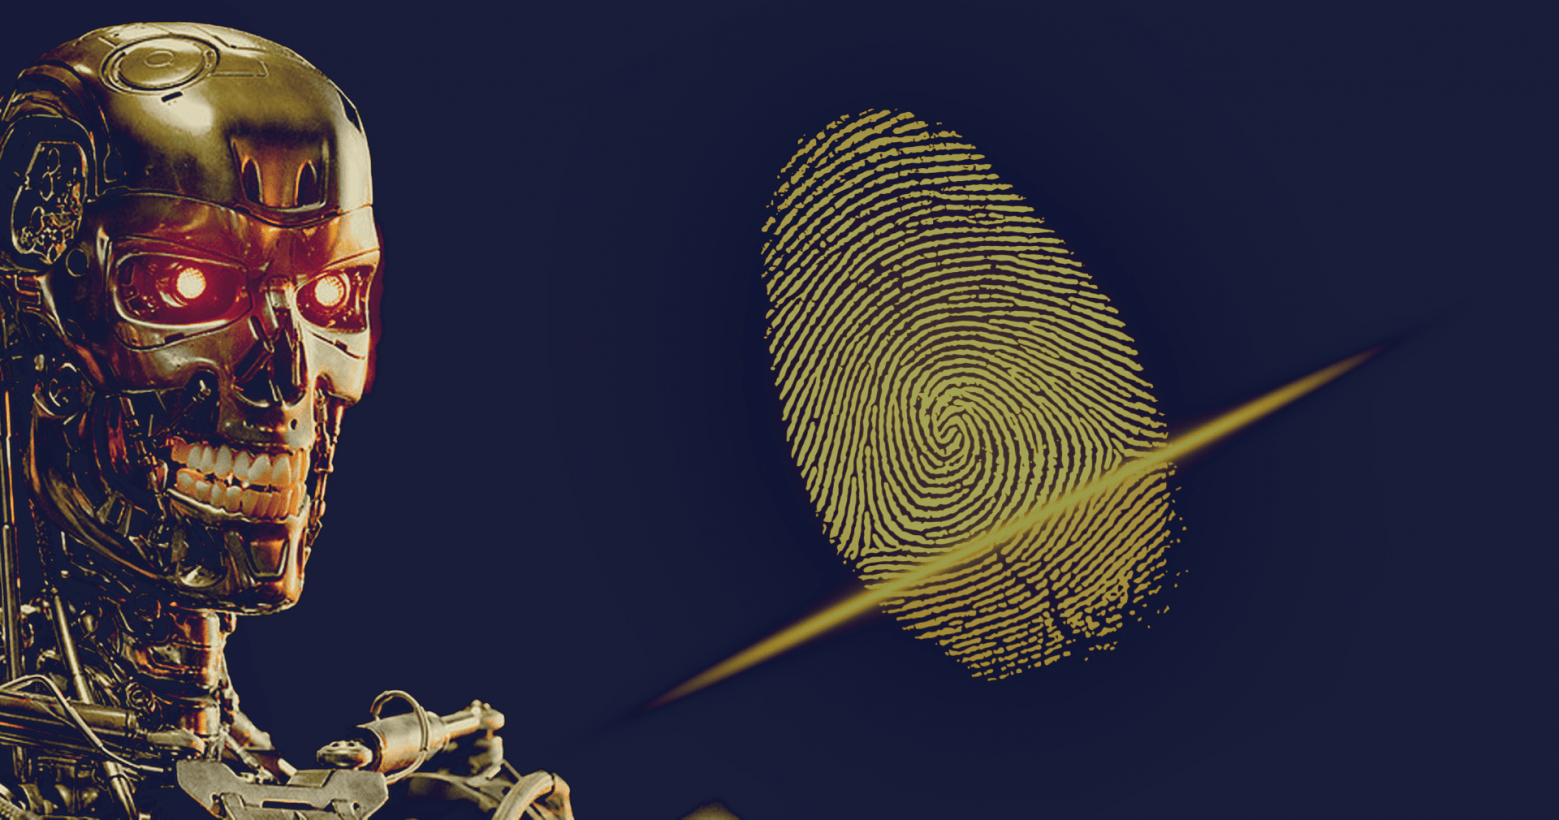 AI-generated fingerprints could soon fool biometric systems